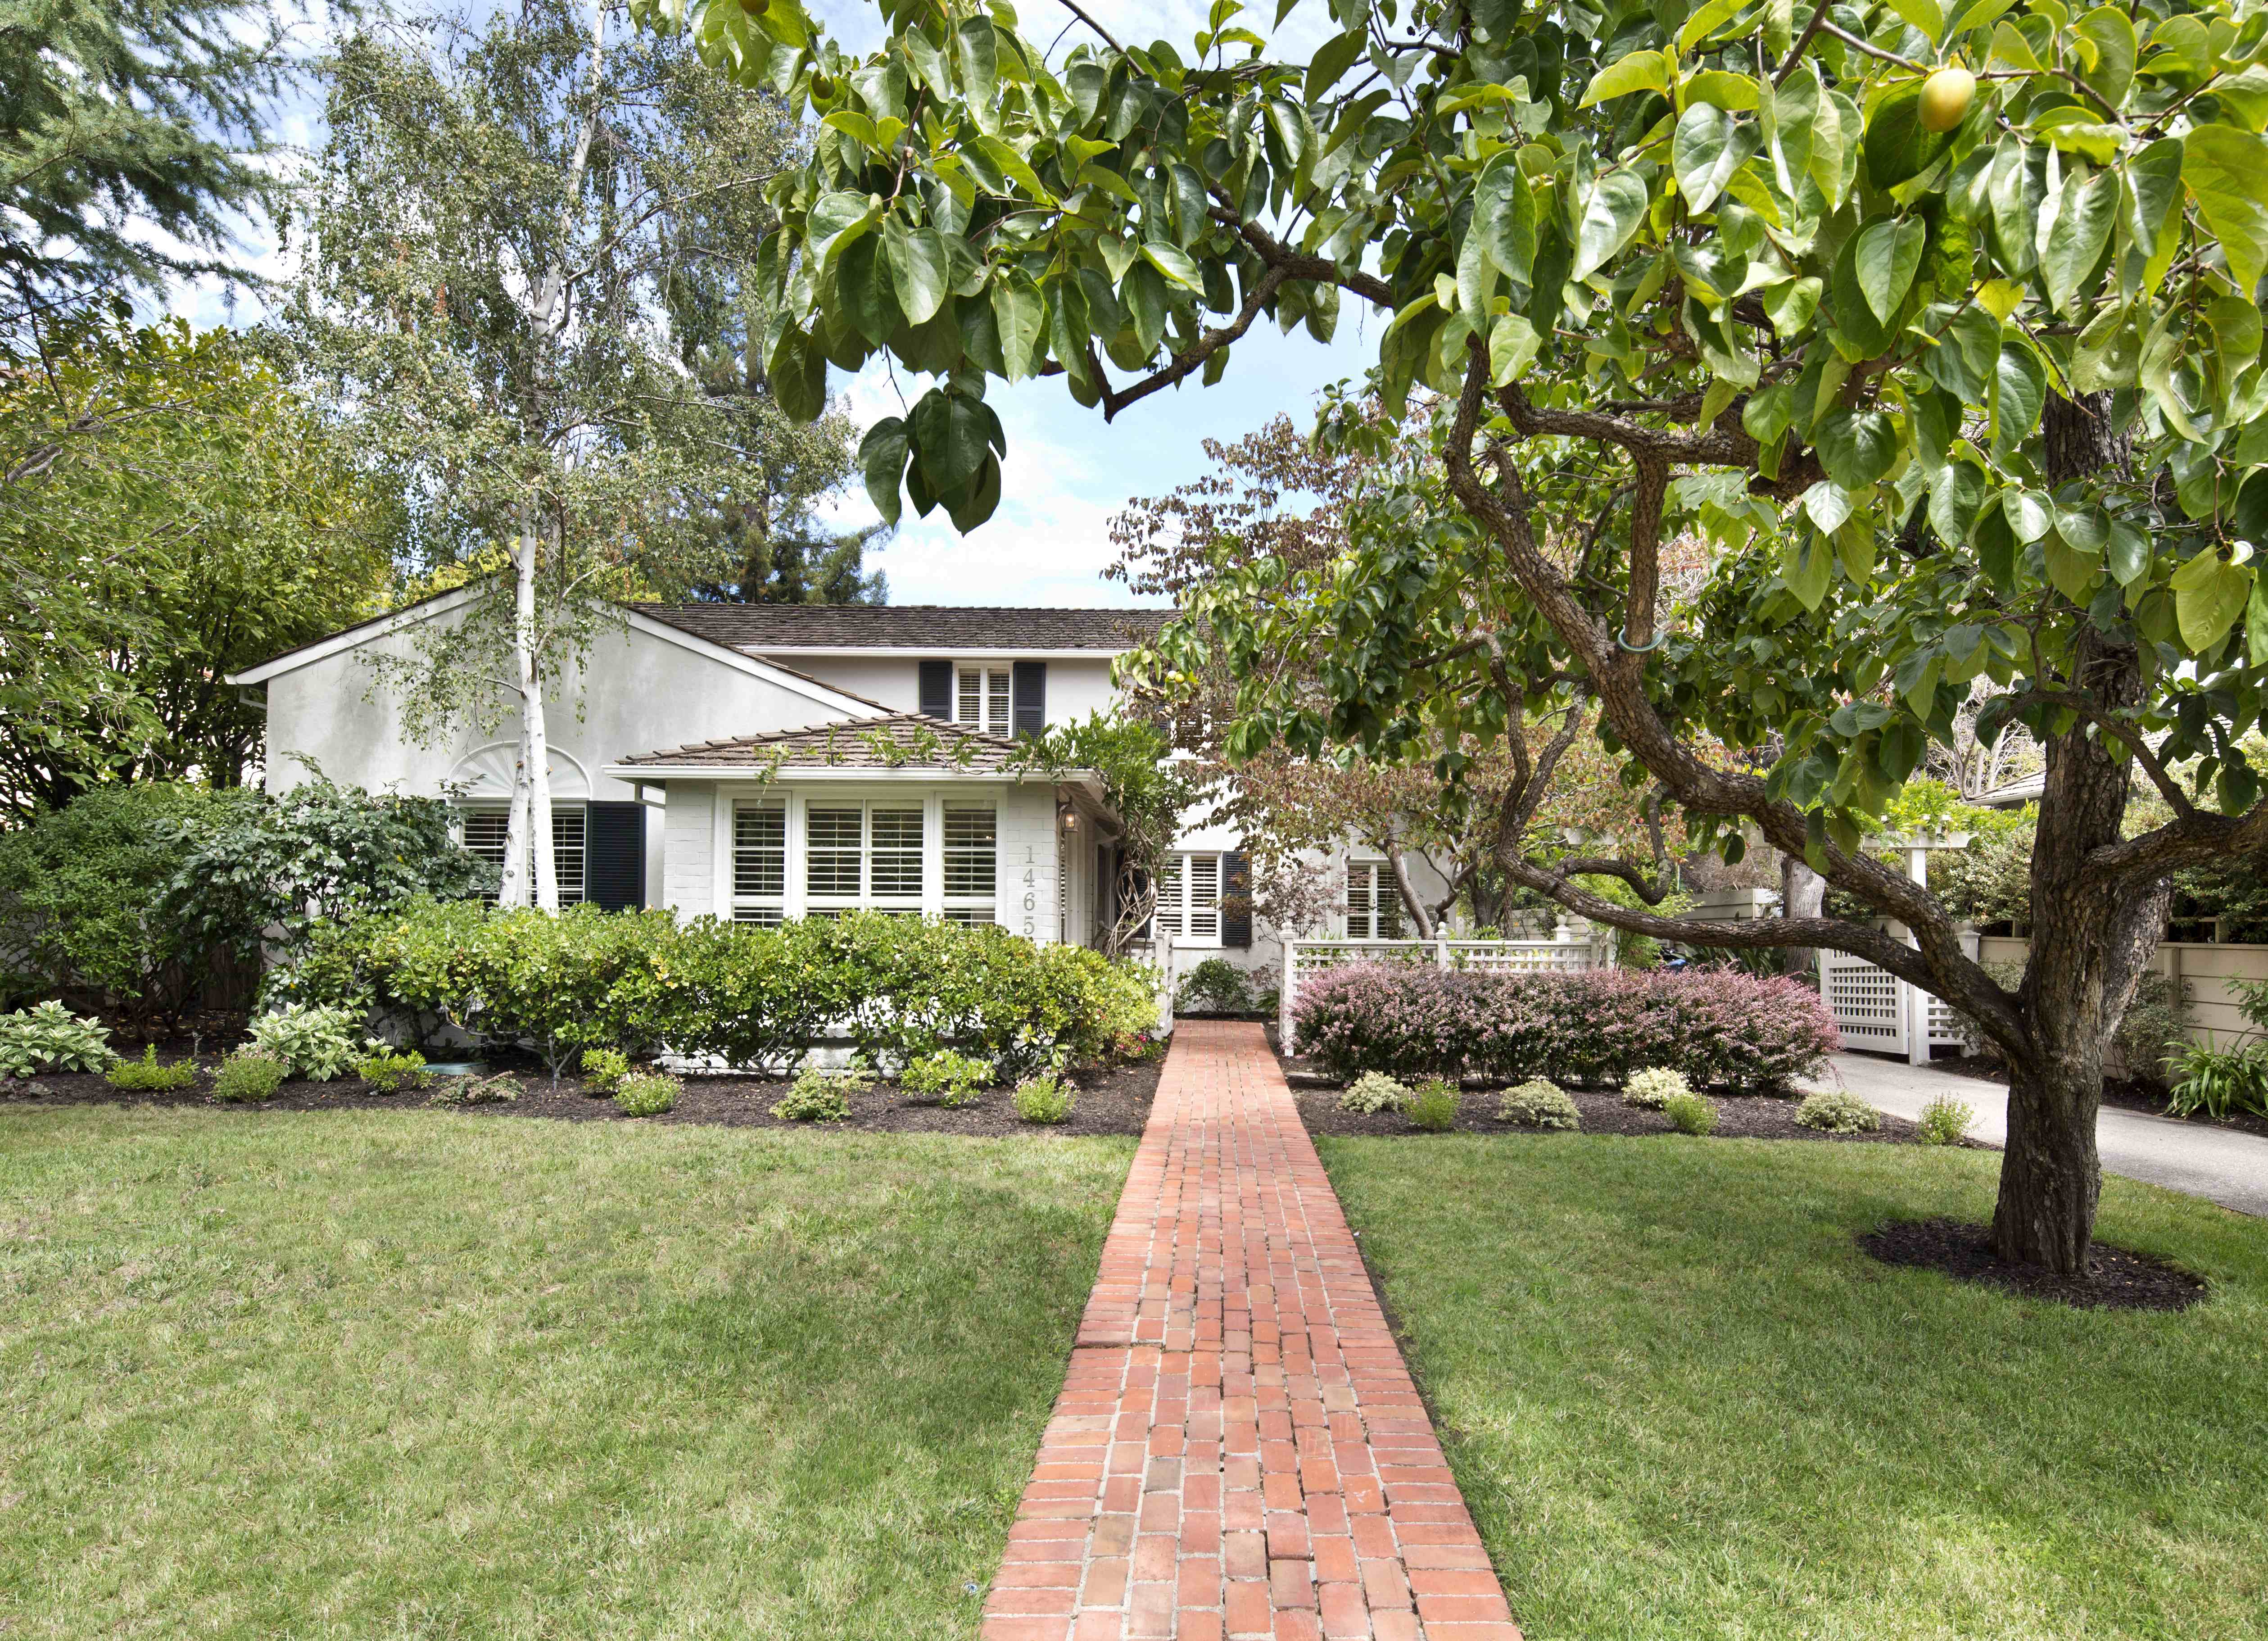 Single Family Home for Sale at Crescent Park Palo Alto 1465 Edgewood Drive Palo Alto, California 94301 United States